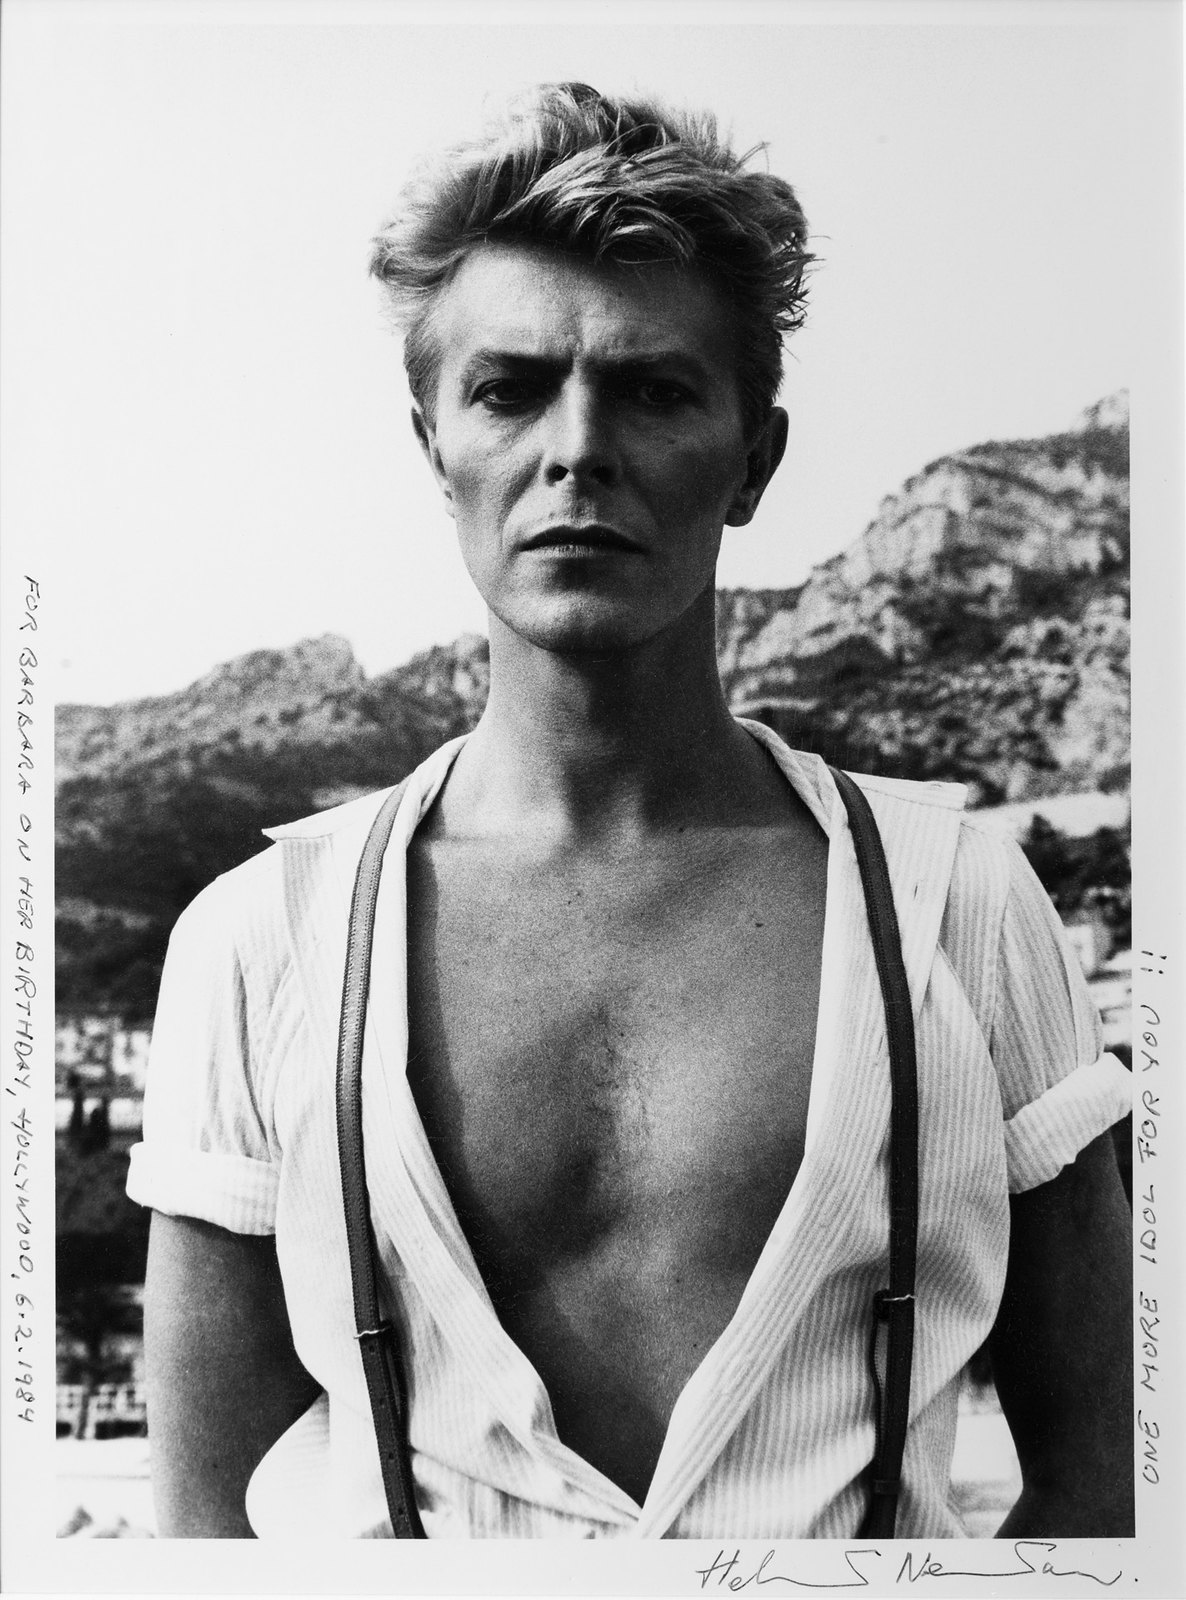 David Bowie por Helmut Newton / Cortesia SP-Foto